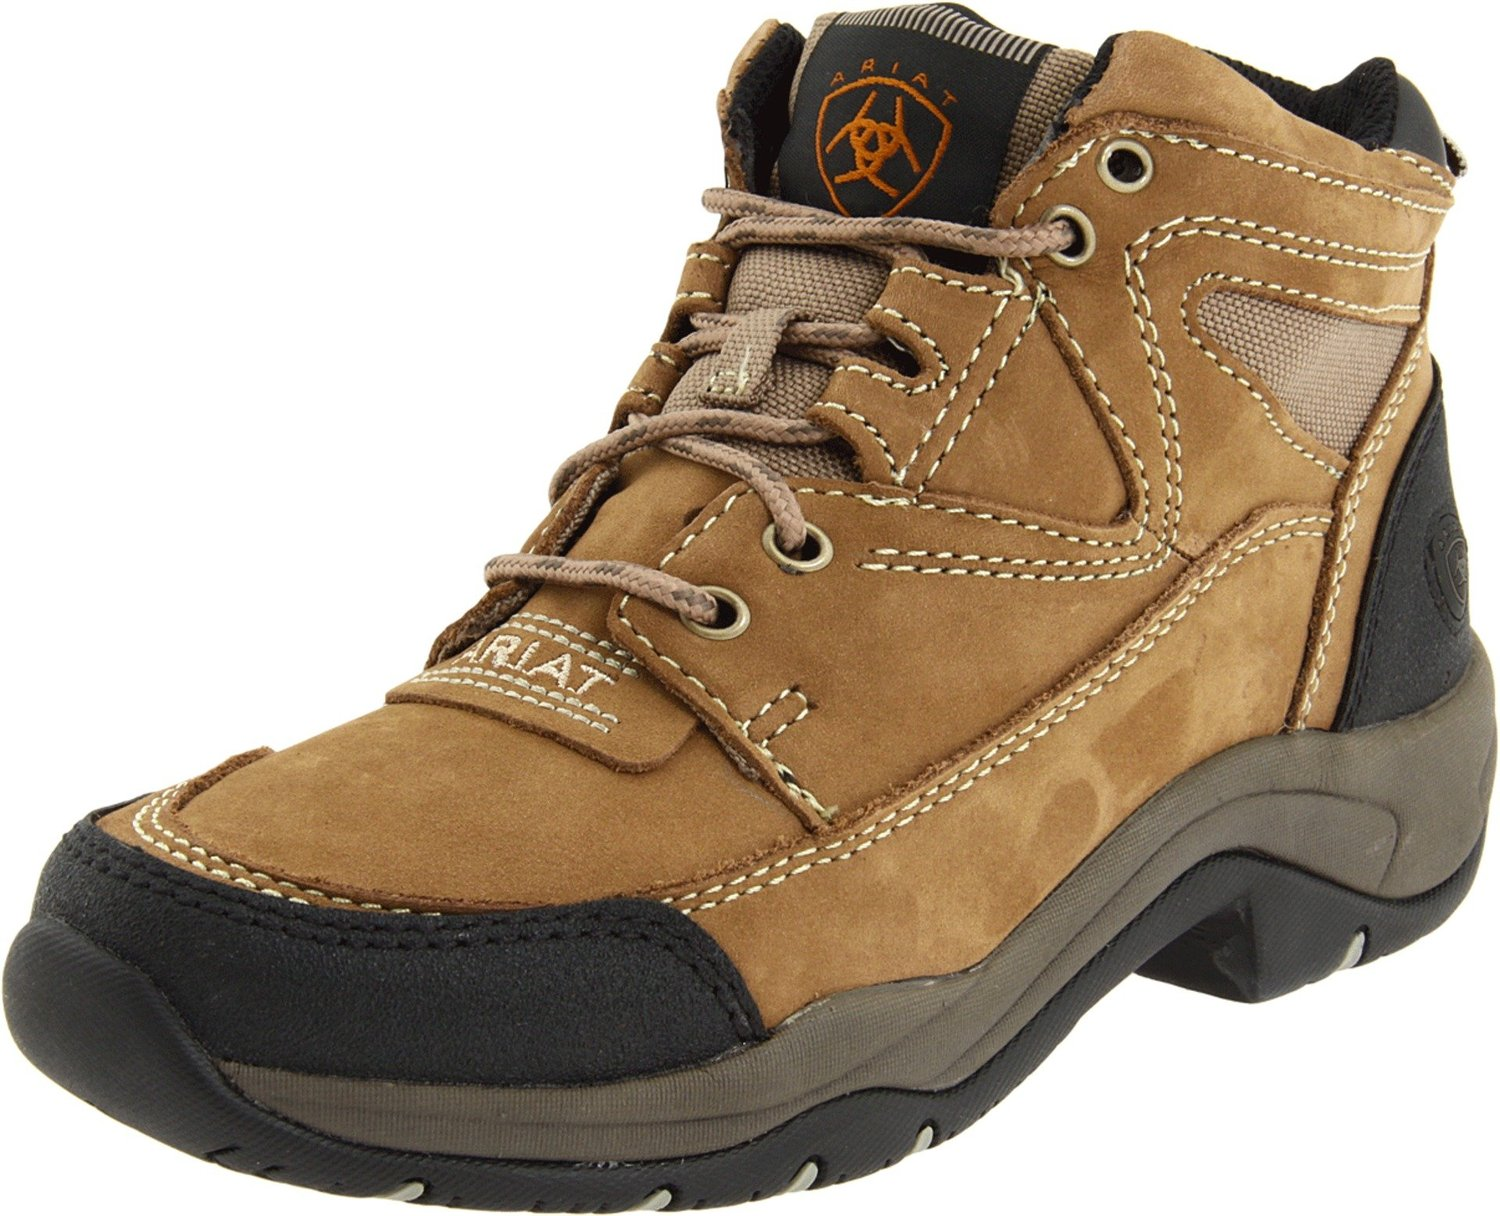 Ariat Hiking Boots ibxid335